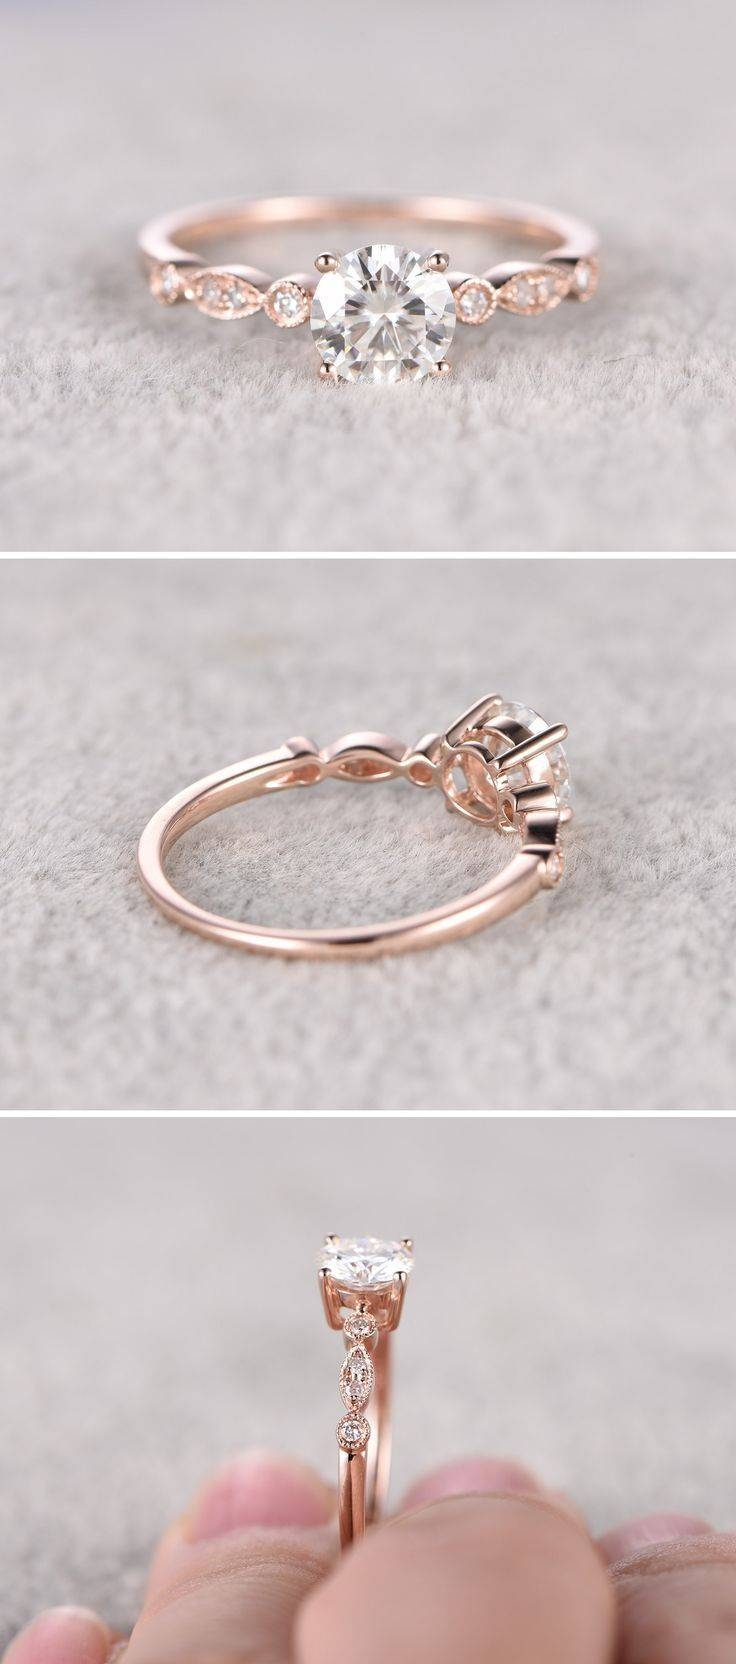 Best 25+ Small Engagement Rings Ideas On Pinterest | Small Wedding Within Small Size Engagement Rings (View 12 of 15)